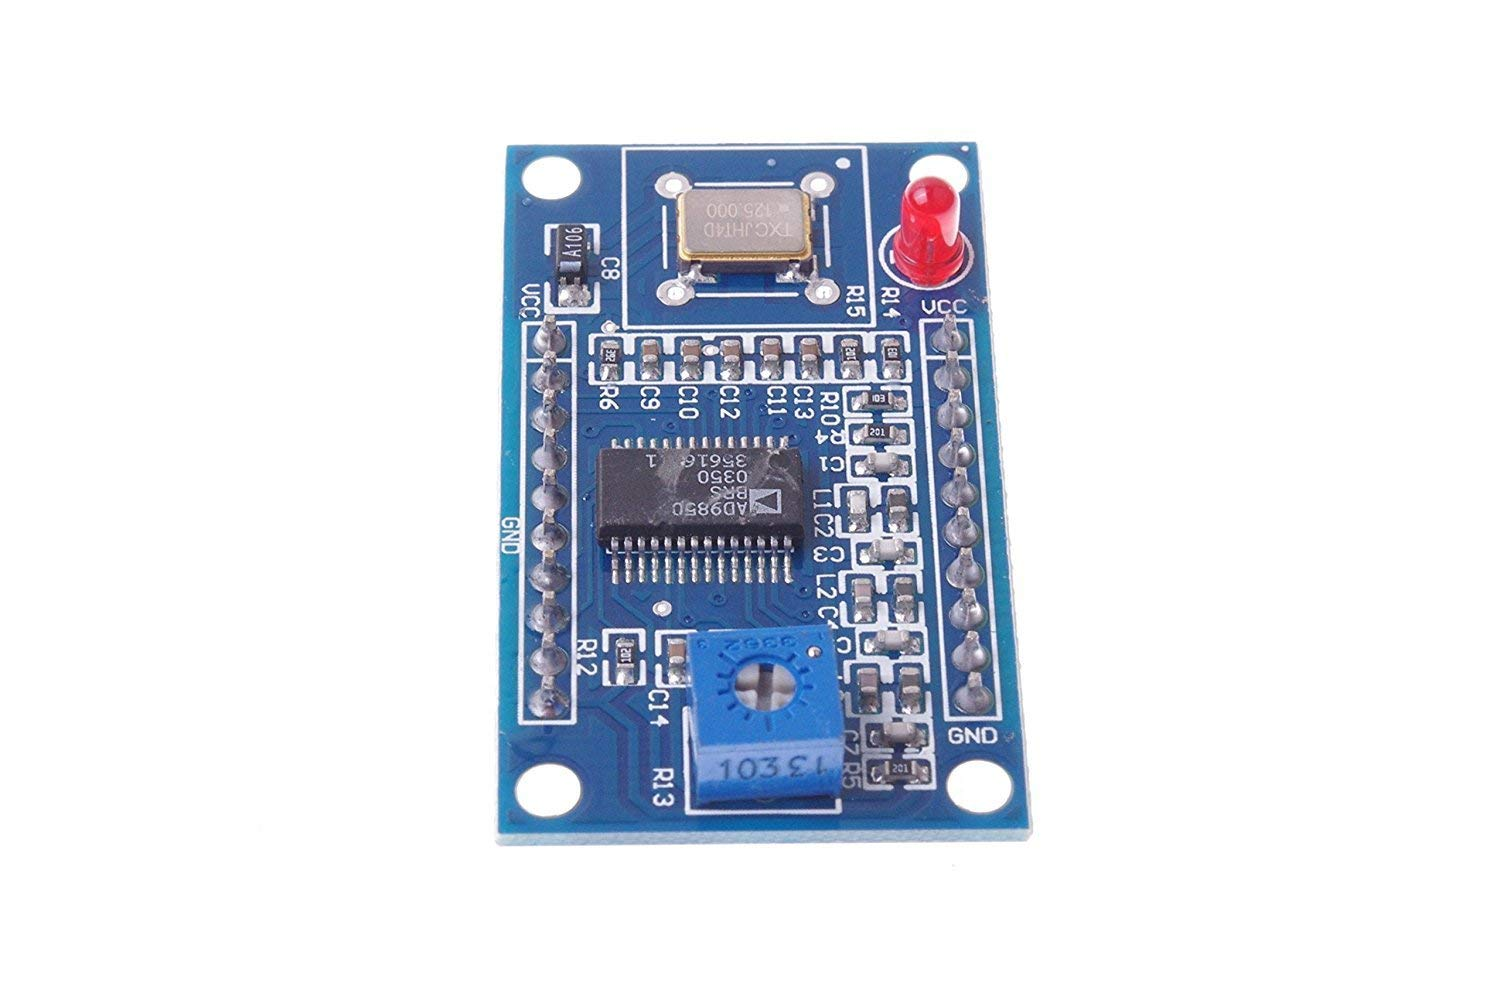 DDS AD9850 Signal Generator Module 0-40MHz Sine Wave and 2 Square Wave Output IC Test Equipment